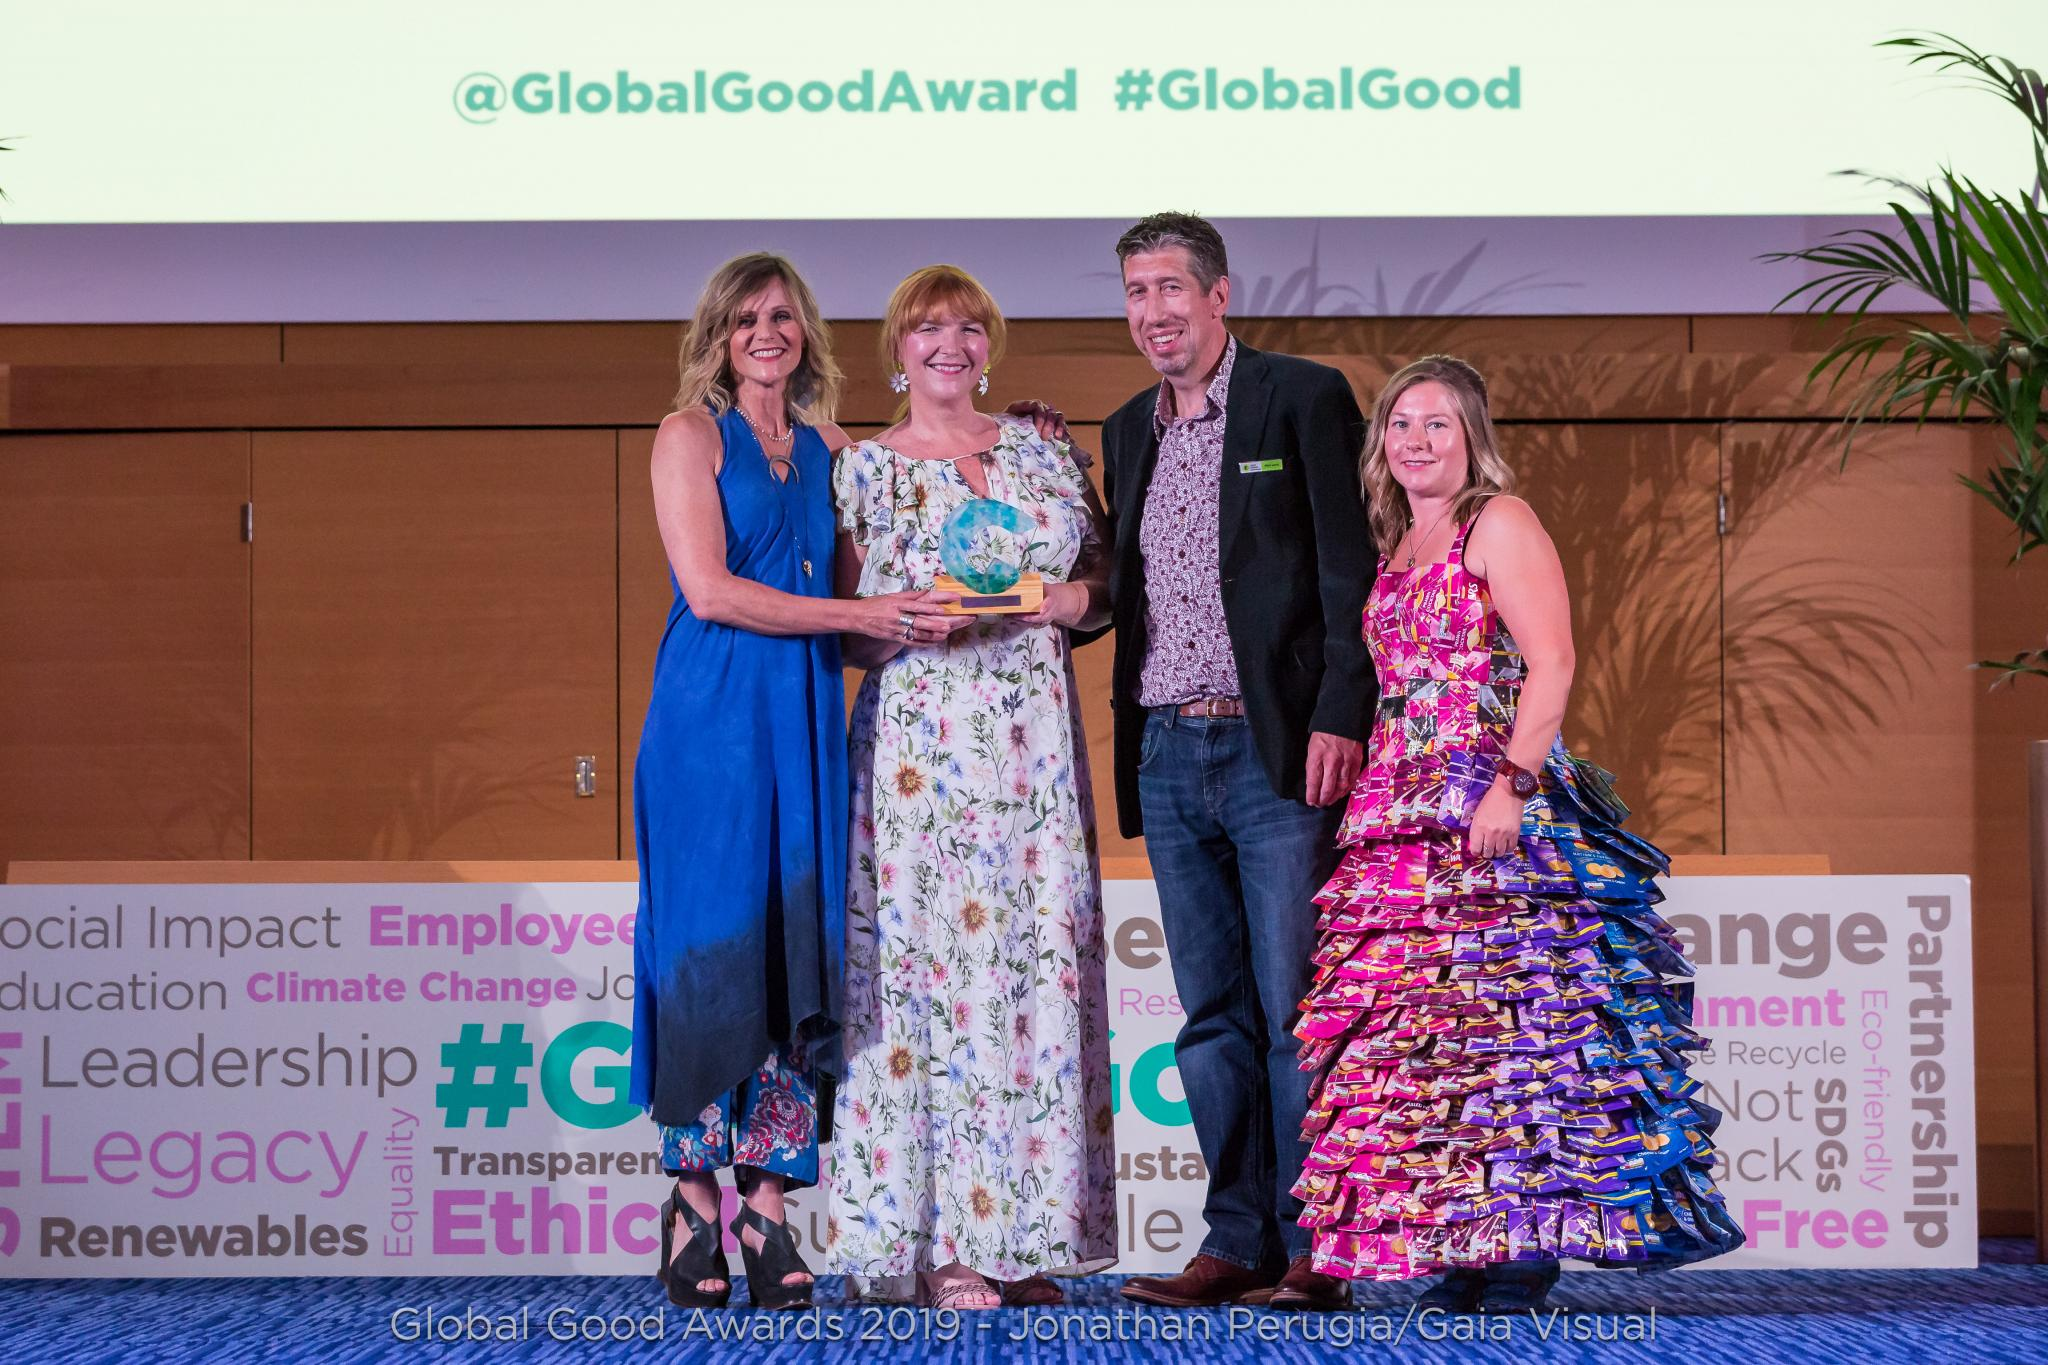 global good awards dress